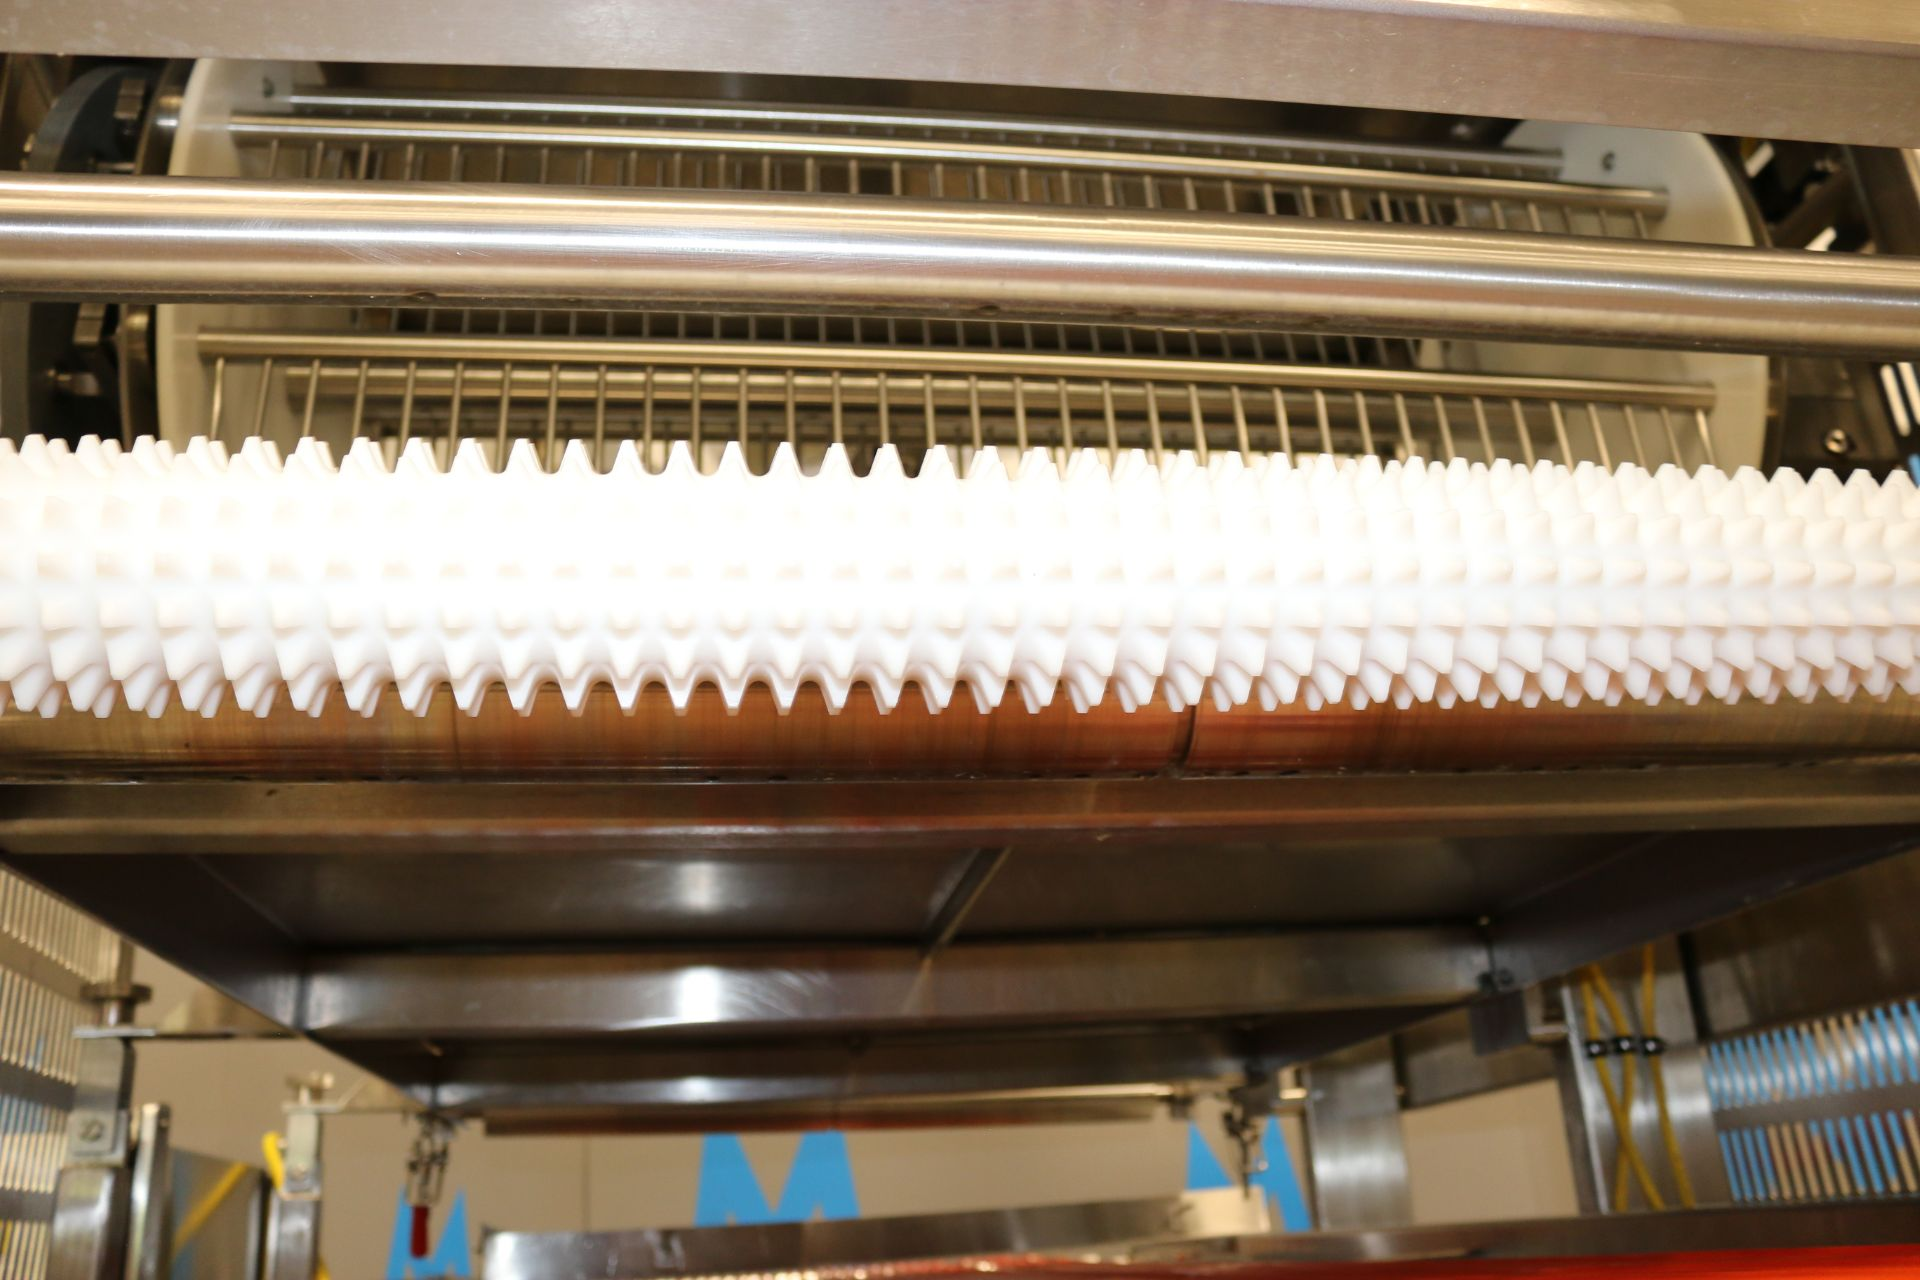 Lot 49 - S/S Pizzamatic Water Fall Applicator, M/N WA 30 Cheese Applicator, S/N 00111, 240 Volts, 3 Phase,